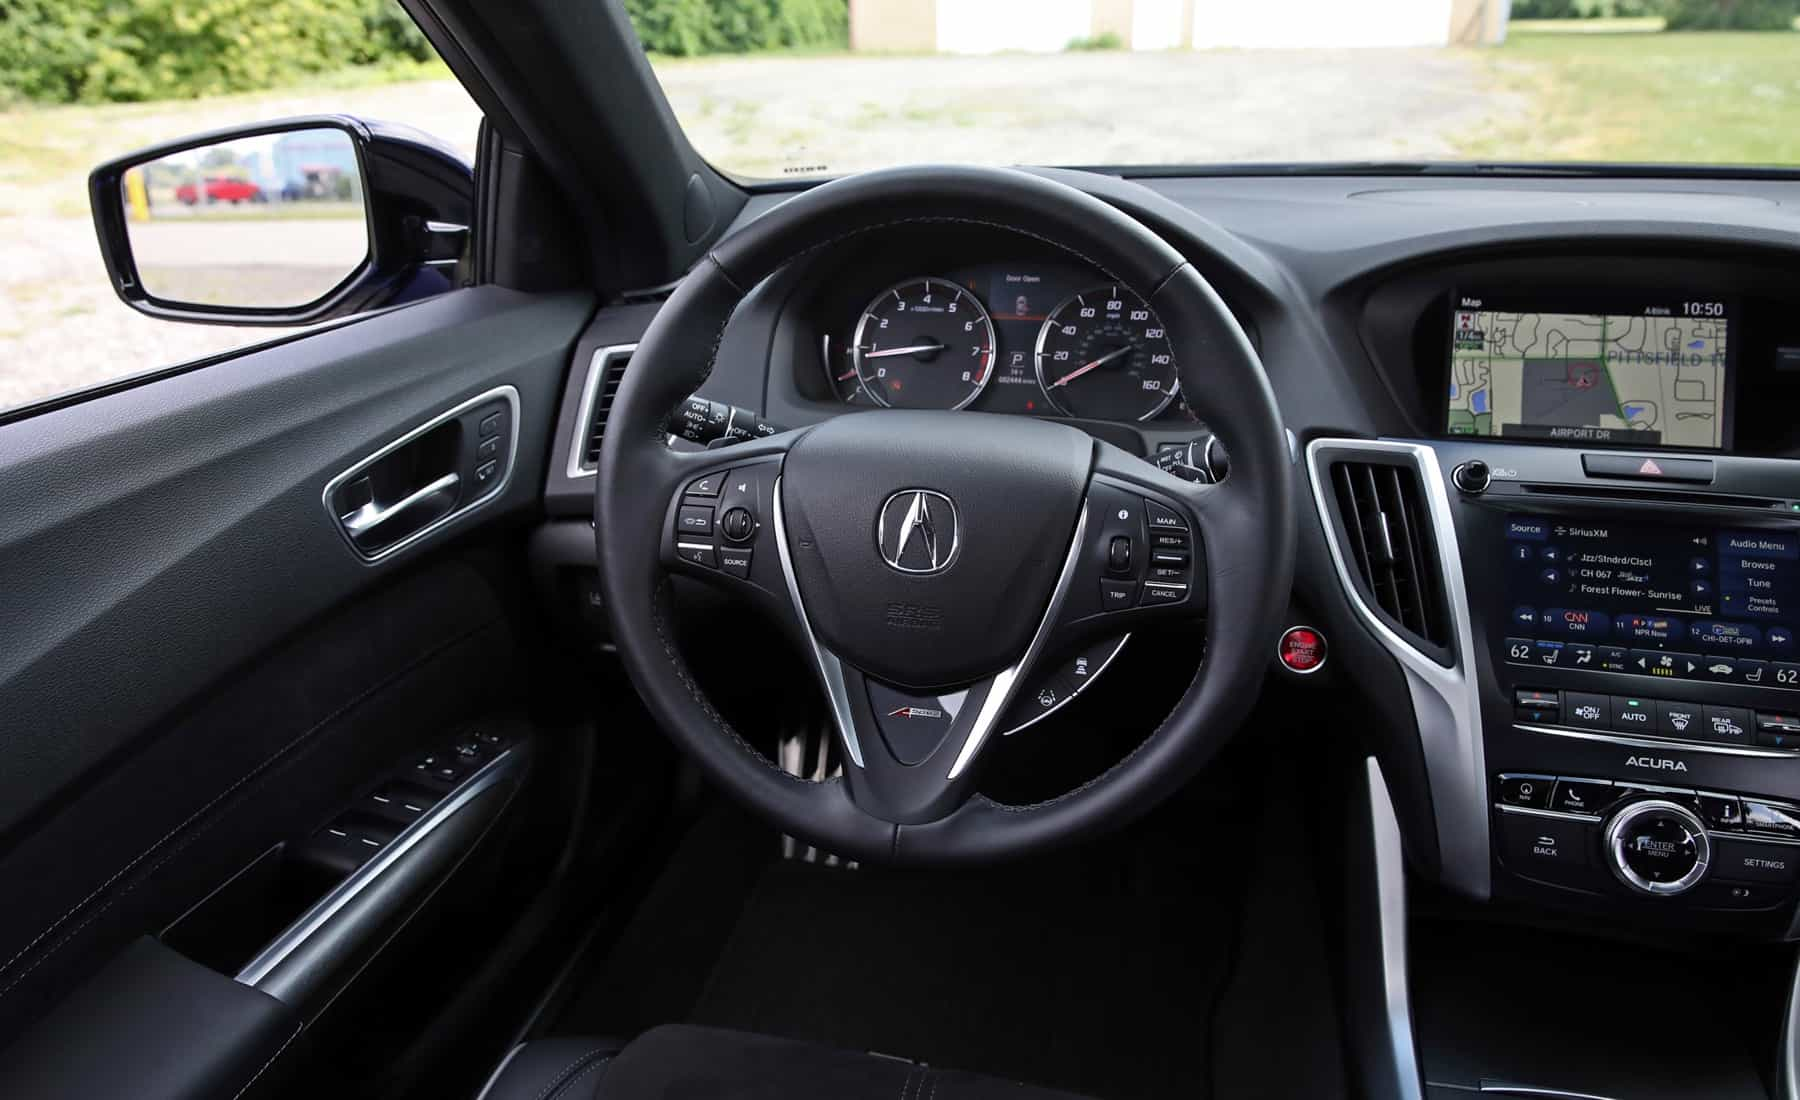 2018 Acura TLX Interior View Steering (View 15 of 46)